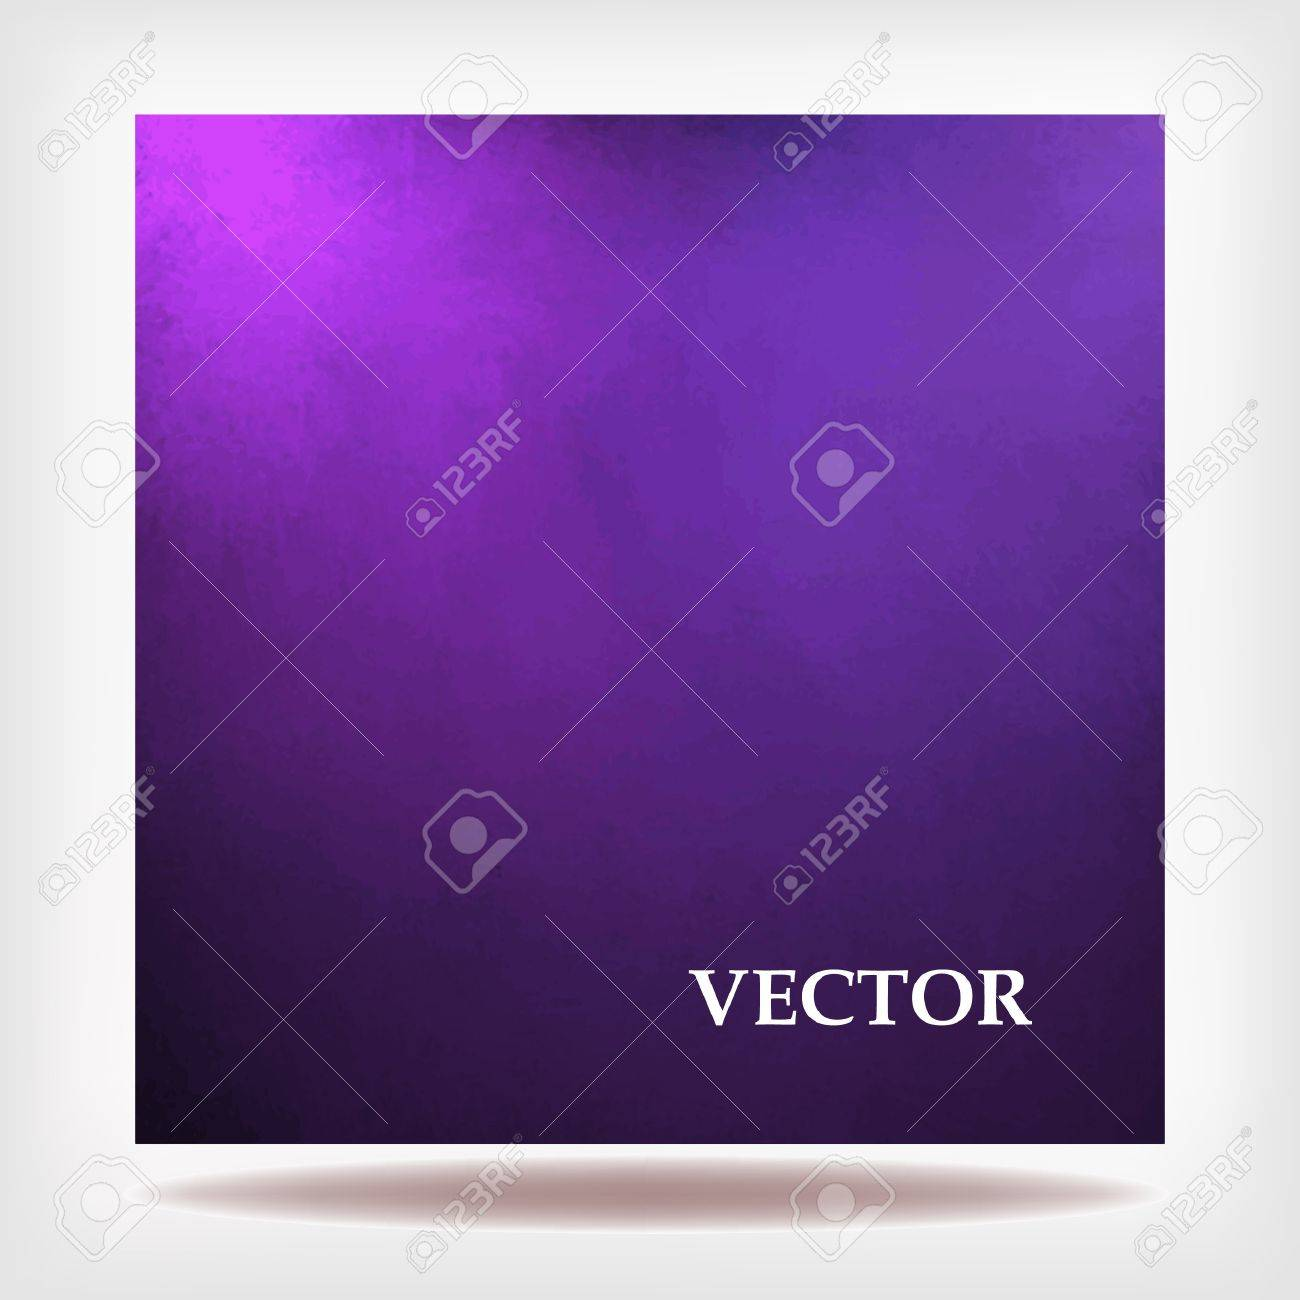 abstract purple background, vintage grunge background texture design, elegant antique paint on wall illustration, royal purple color paper, web background template, black grungy background paint layout Stock Vector - 19744776